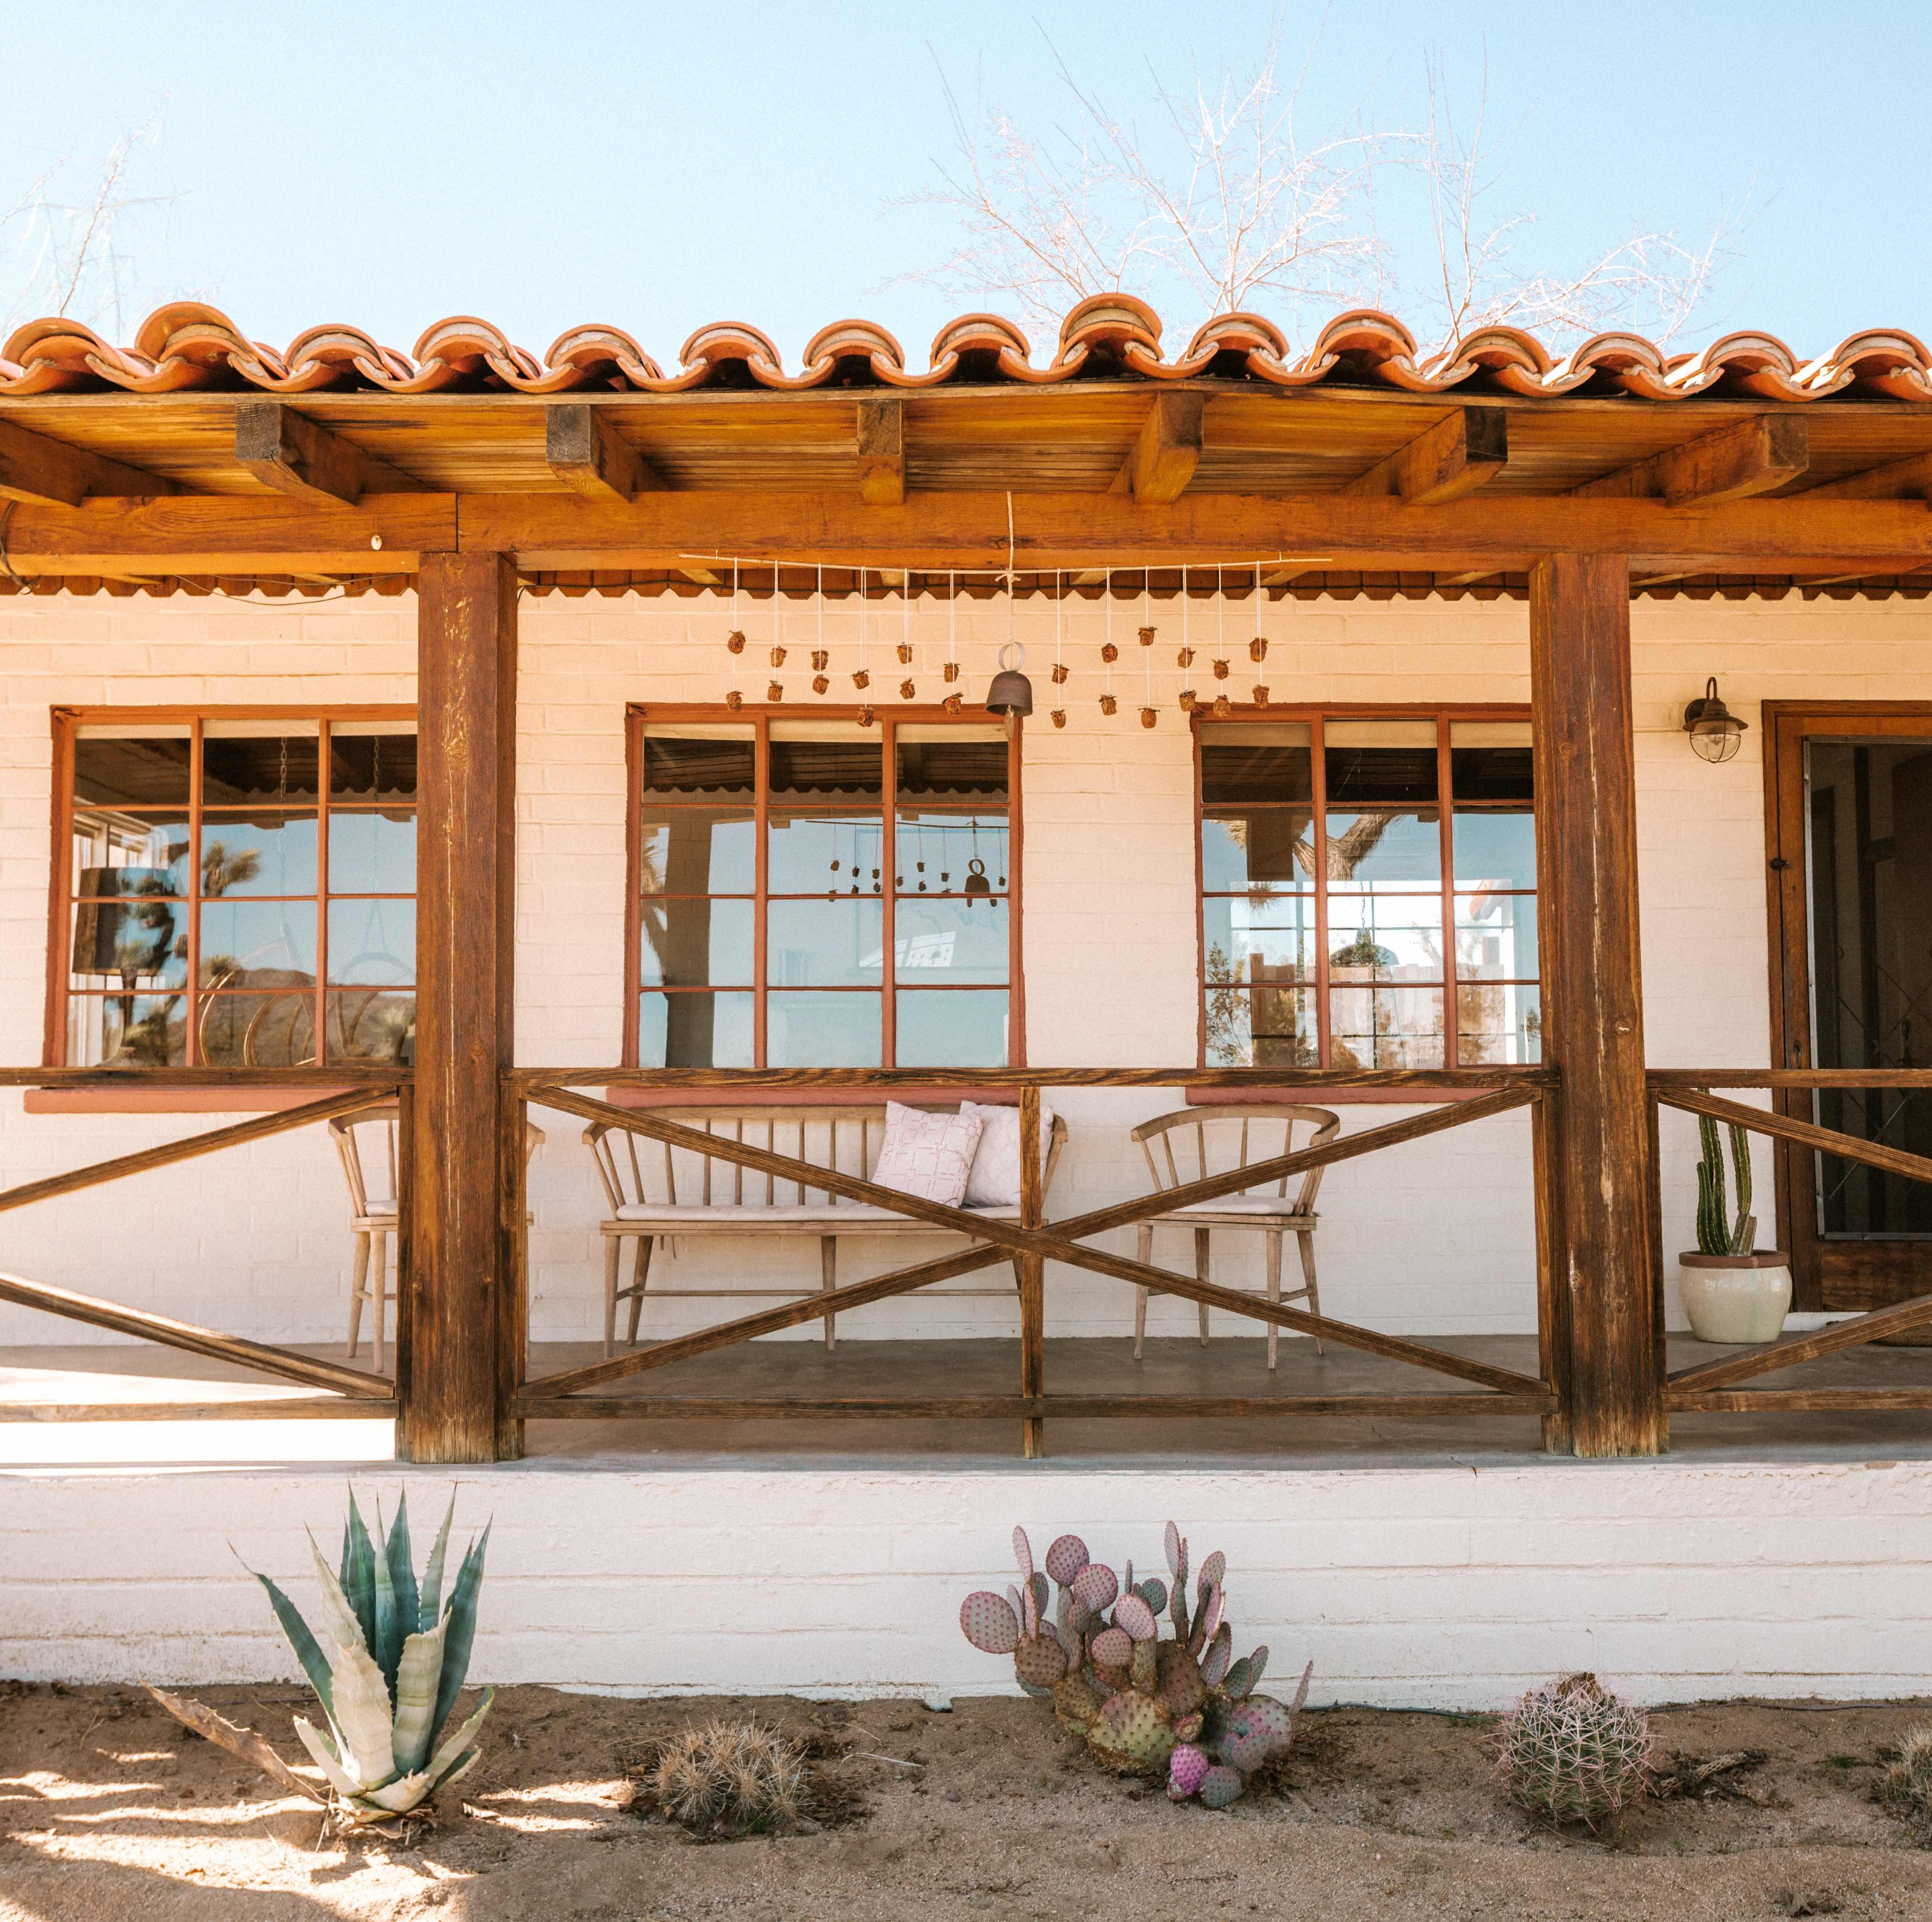 Got cactus wanderlust? Joshua Tree designers share how to bring the desert into your home